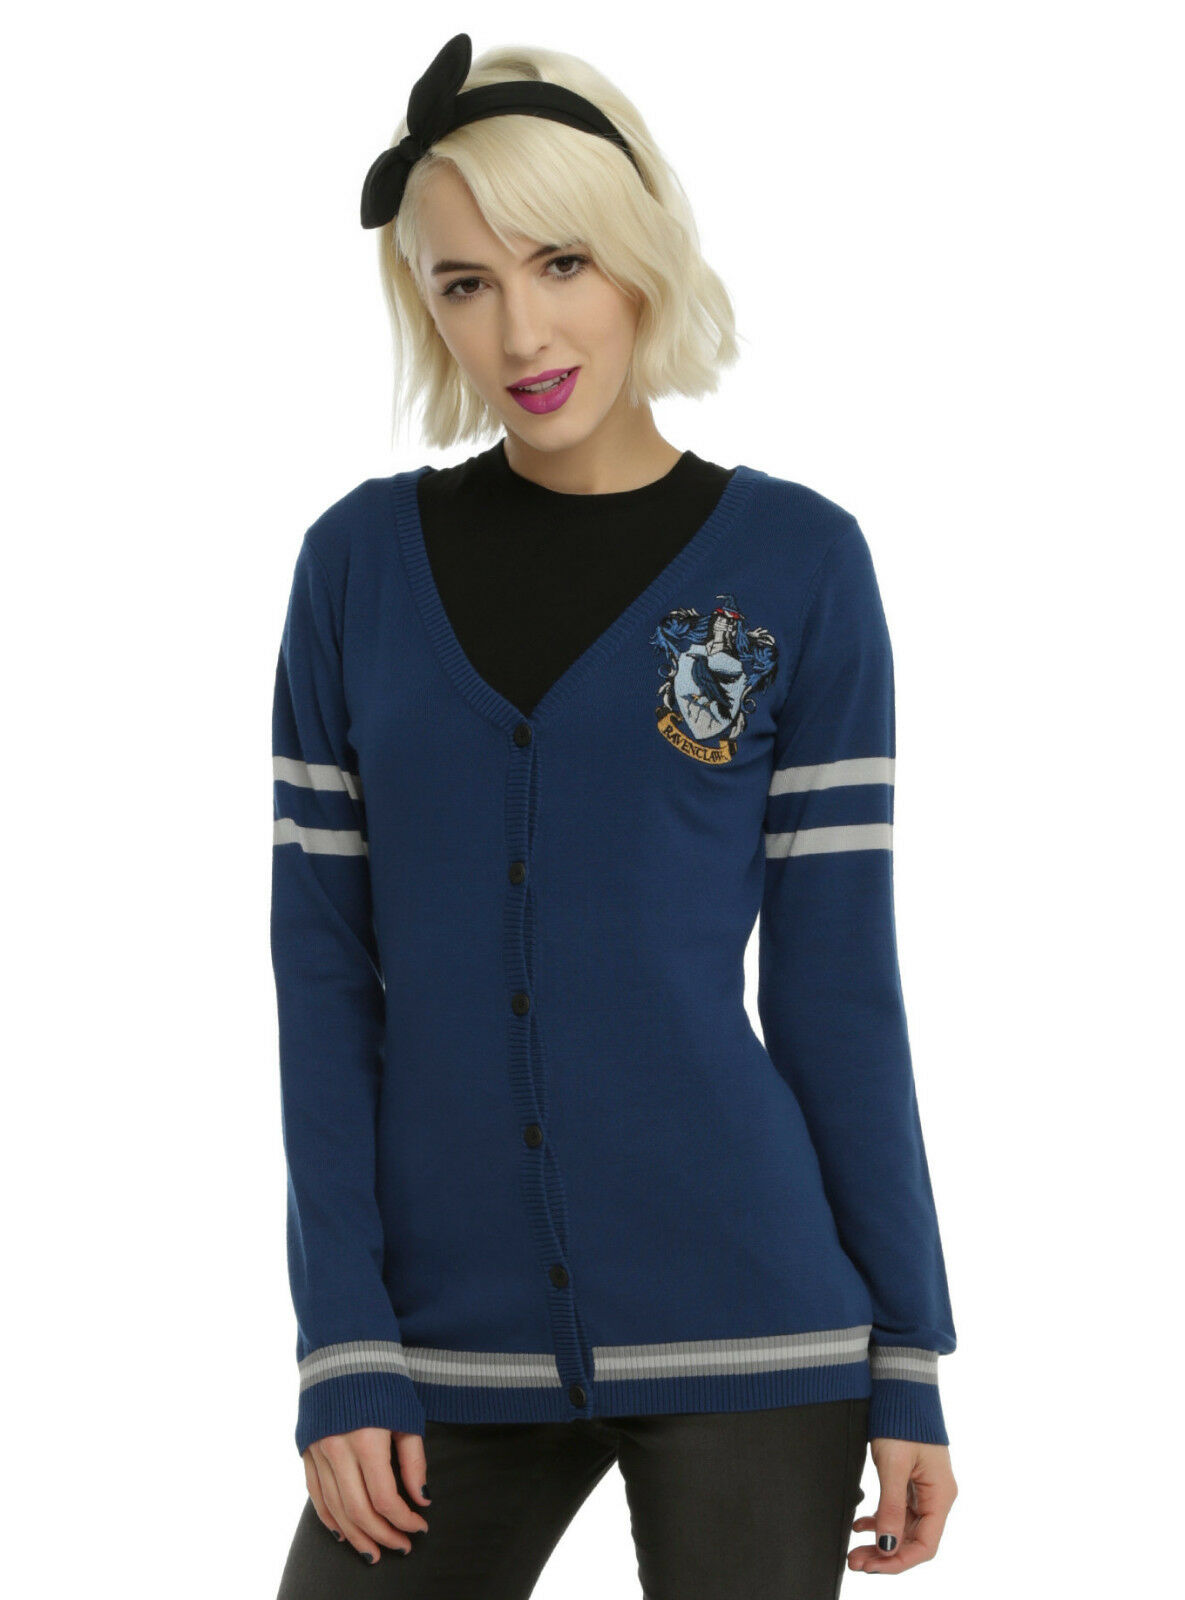 Harry Potter Ravenclaw Cardigan Sweater House Crest button down JRS S-XL NWT